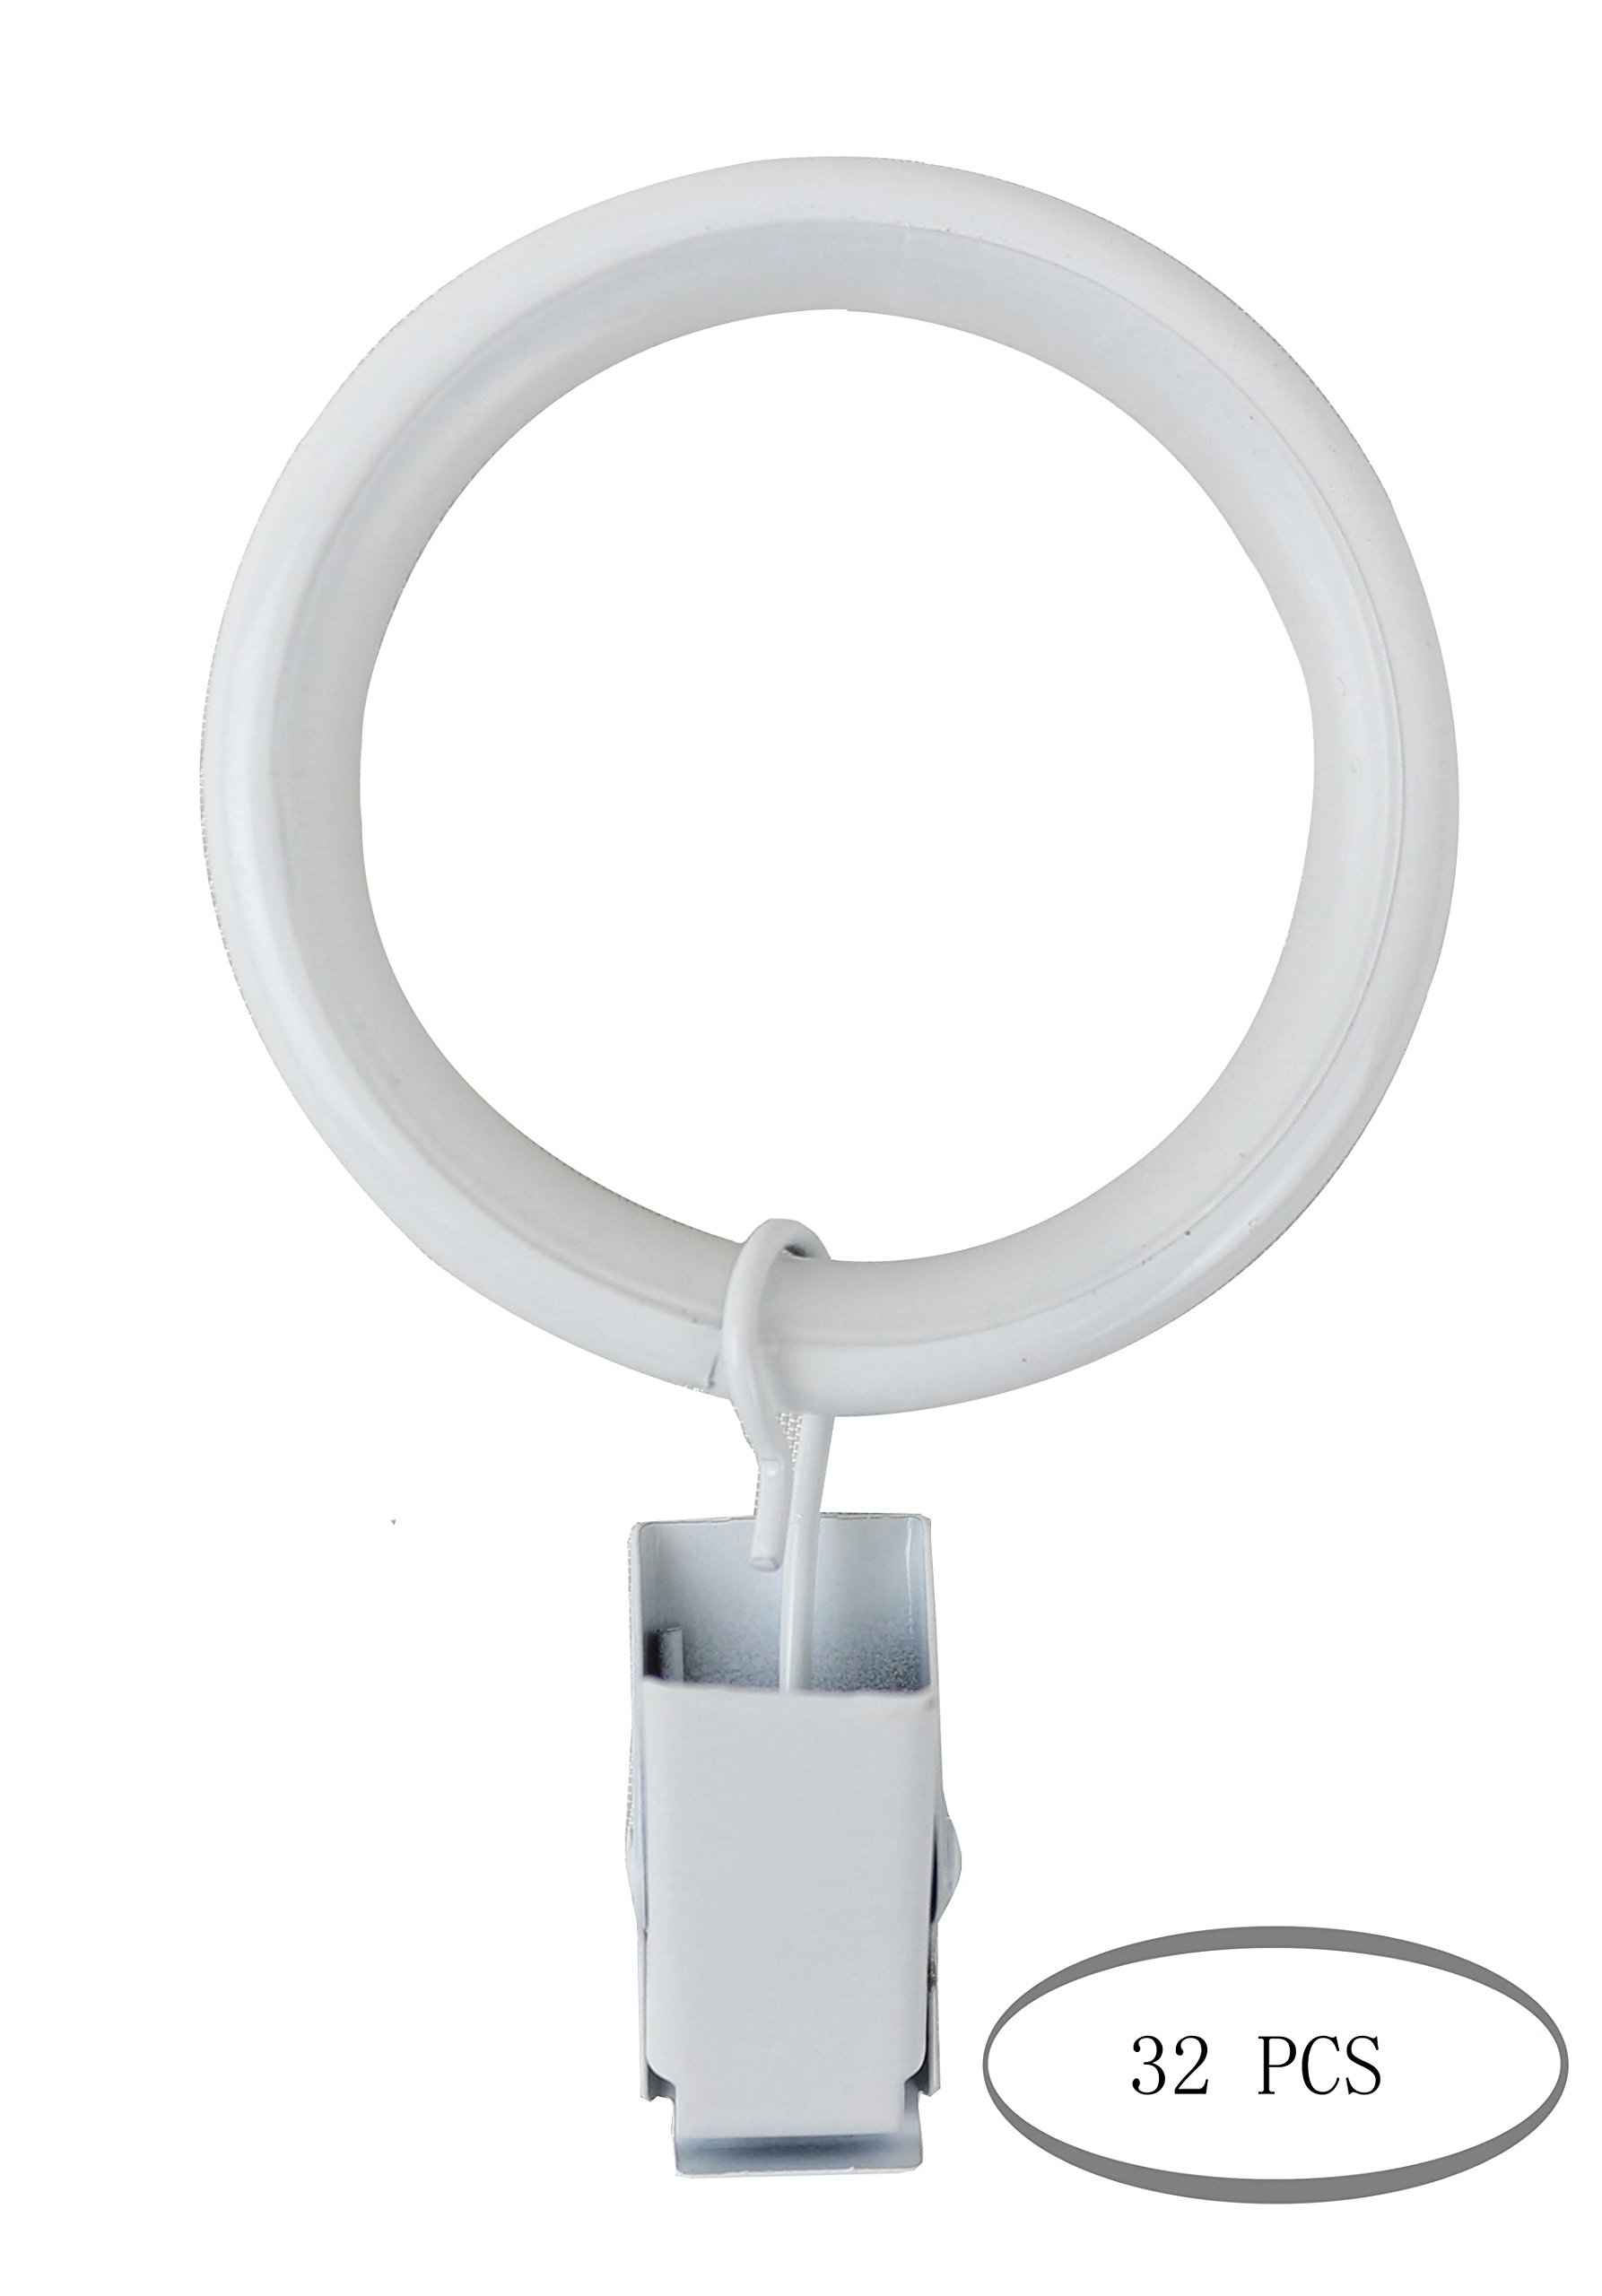 Urbanest Set of 32 Curtain Drapery Rings with Clips, 1.5-inch Inner Diameter, Nylon Insert Quiet Smooth, Glossy White